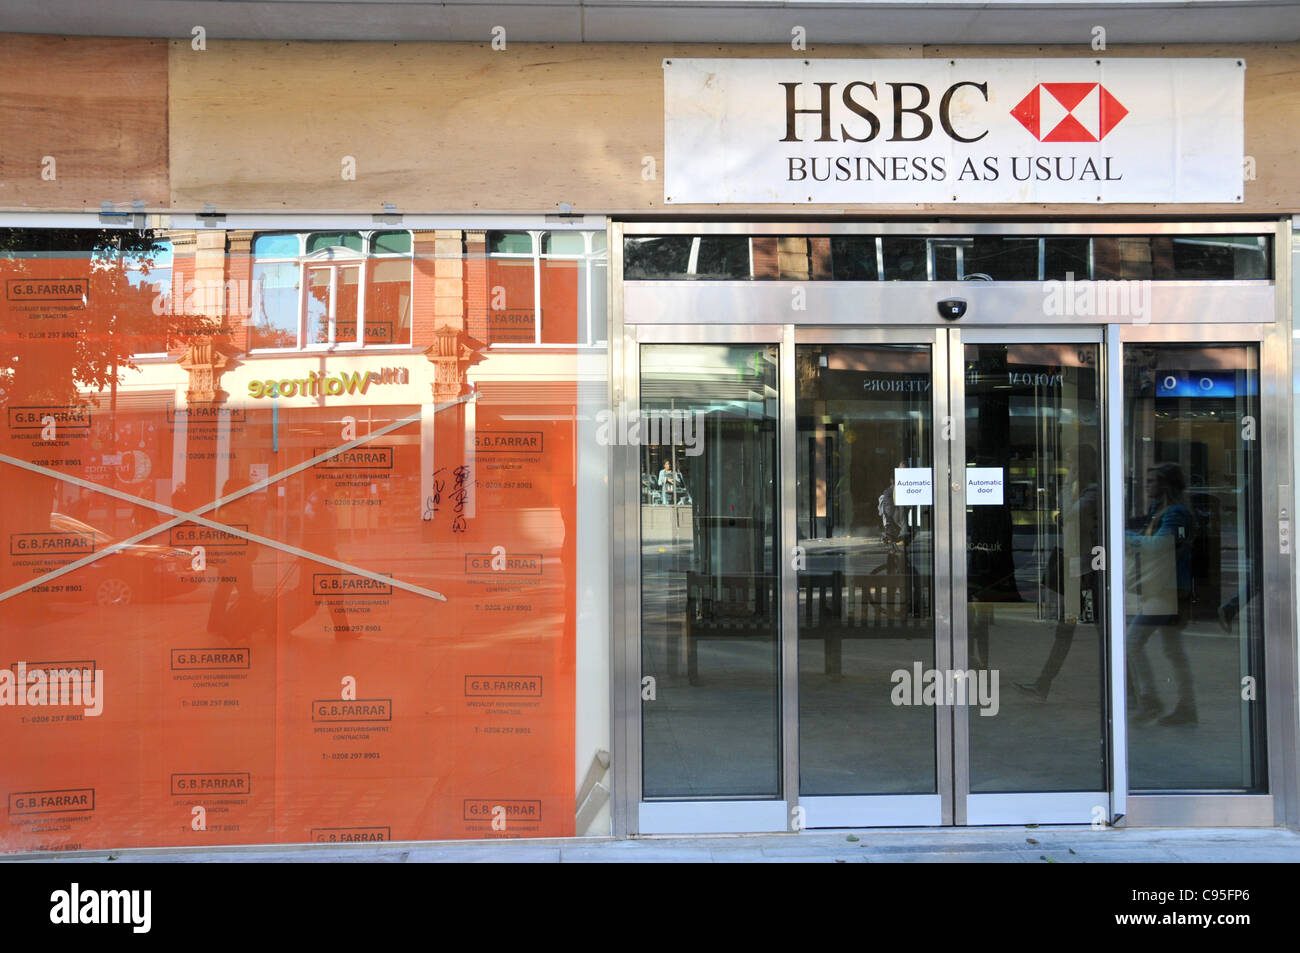 HSBC bank business as usual banking recession slowdown